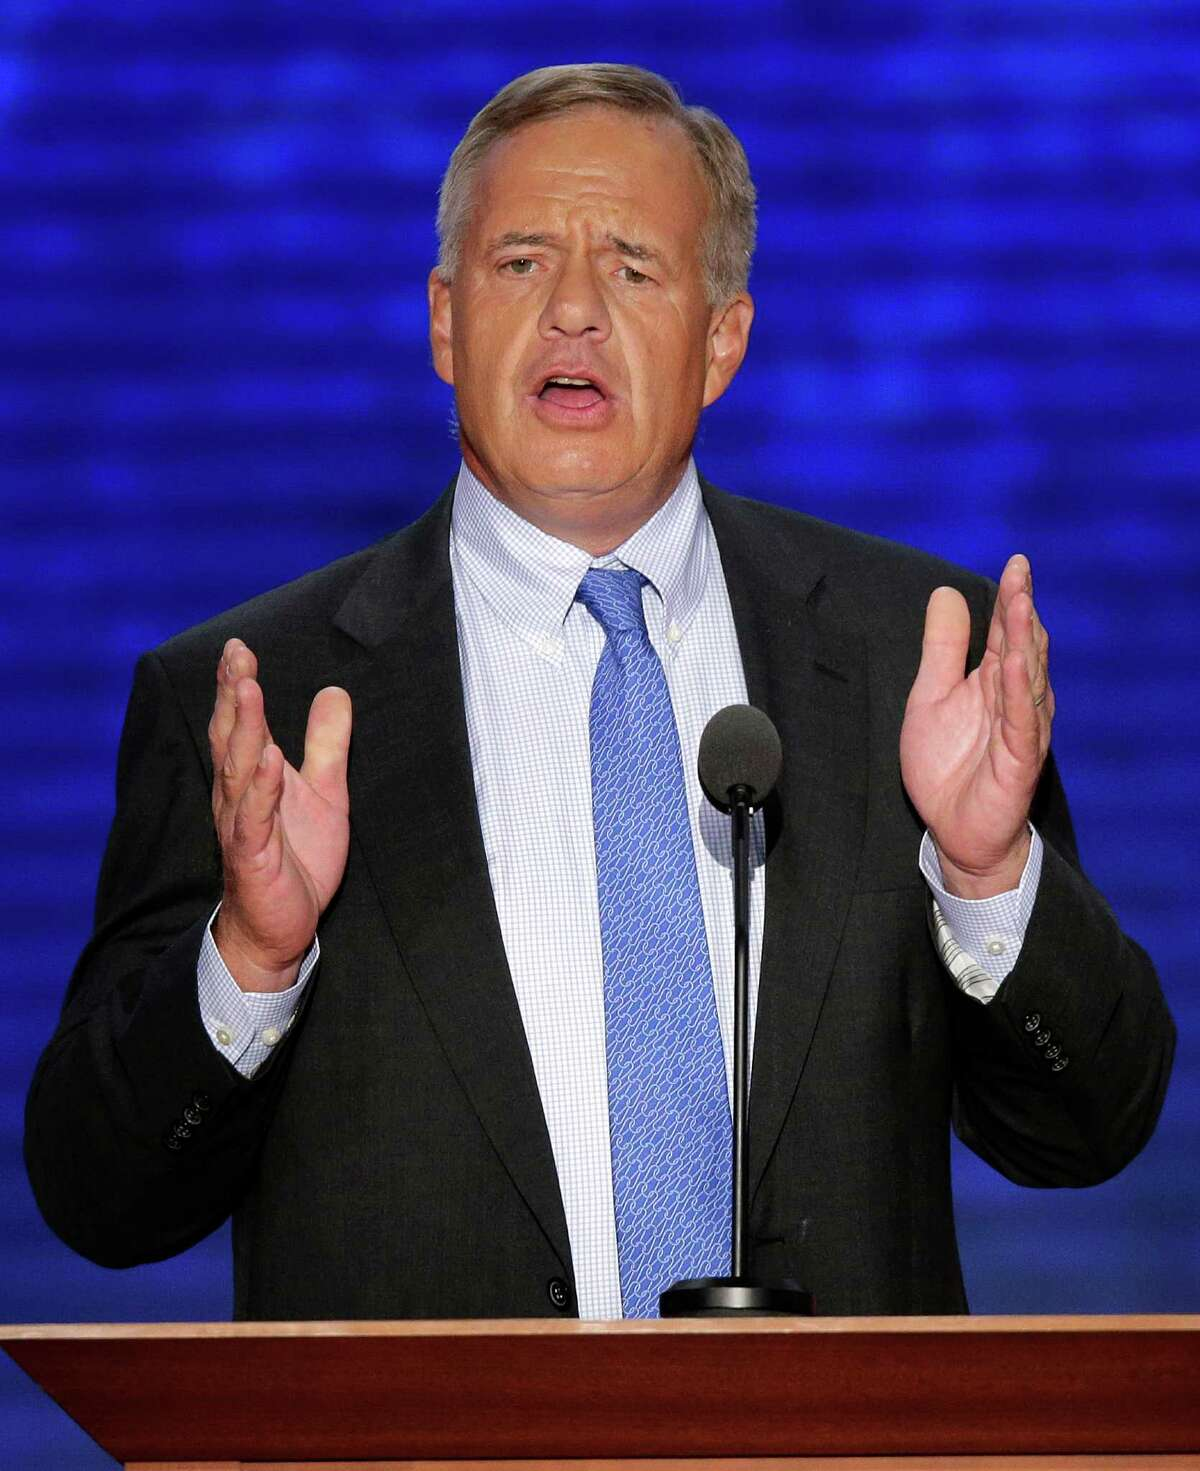 Tom Stemberg, founder of Staples office supply stores, addresses the Republican National Convention in Tampa, Fla., on Thursday, Aug. 30, 2012.